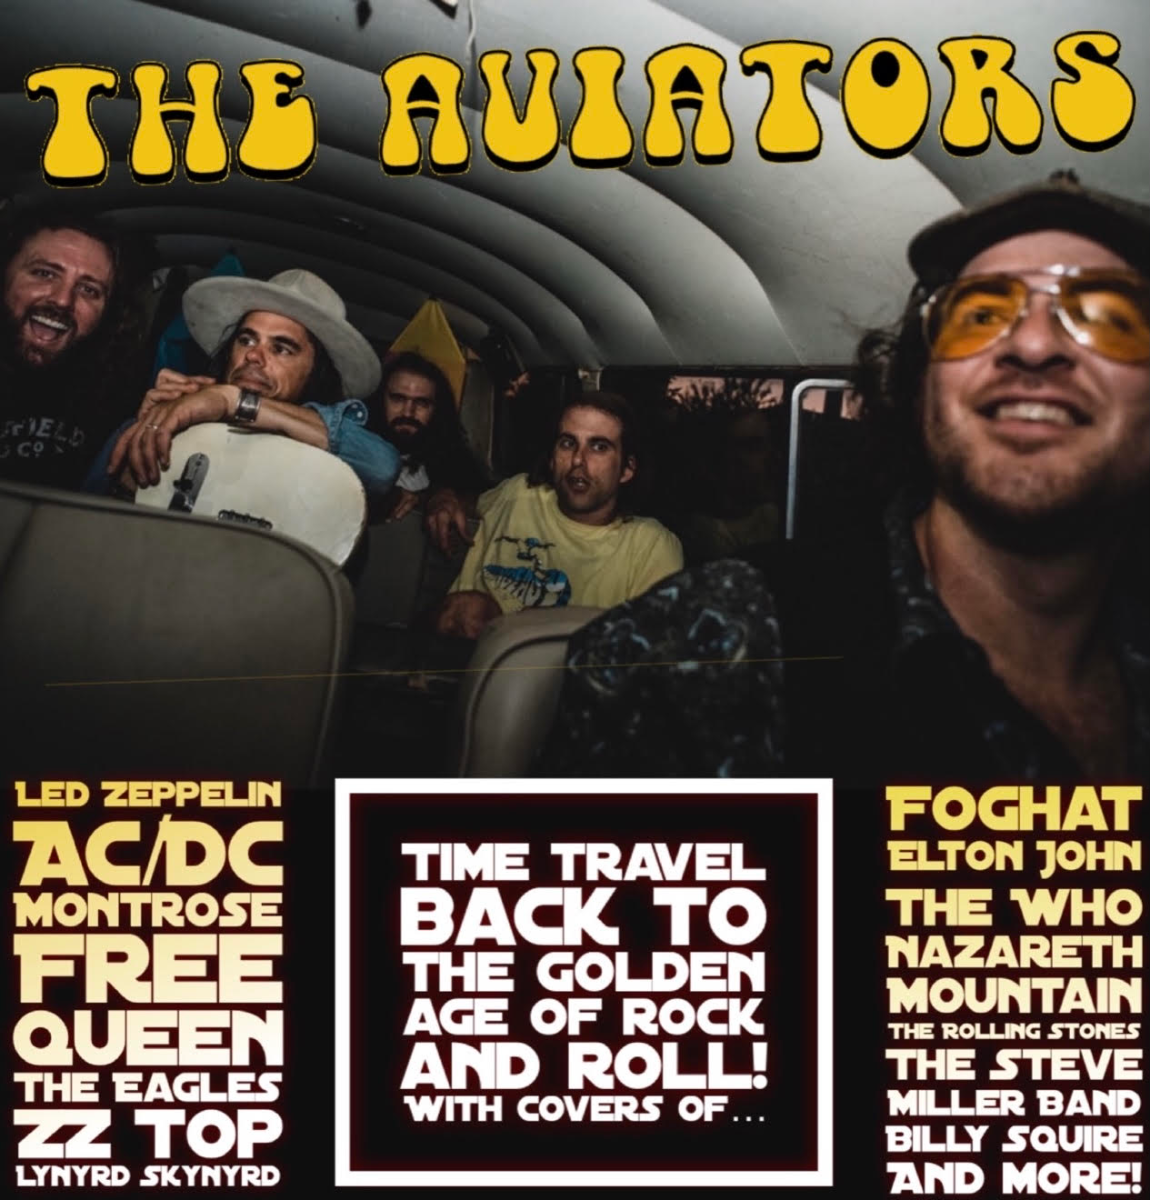 The Aviators: A Tribute to The Golden Age of Rock & Roll, Attack of the Rising, Bonnie Brae, Tara Alouise, Airam Diaz